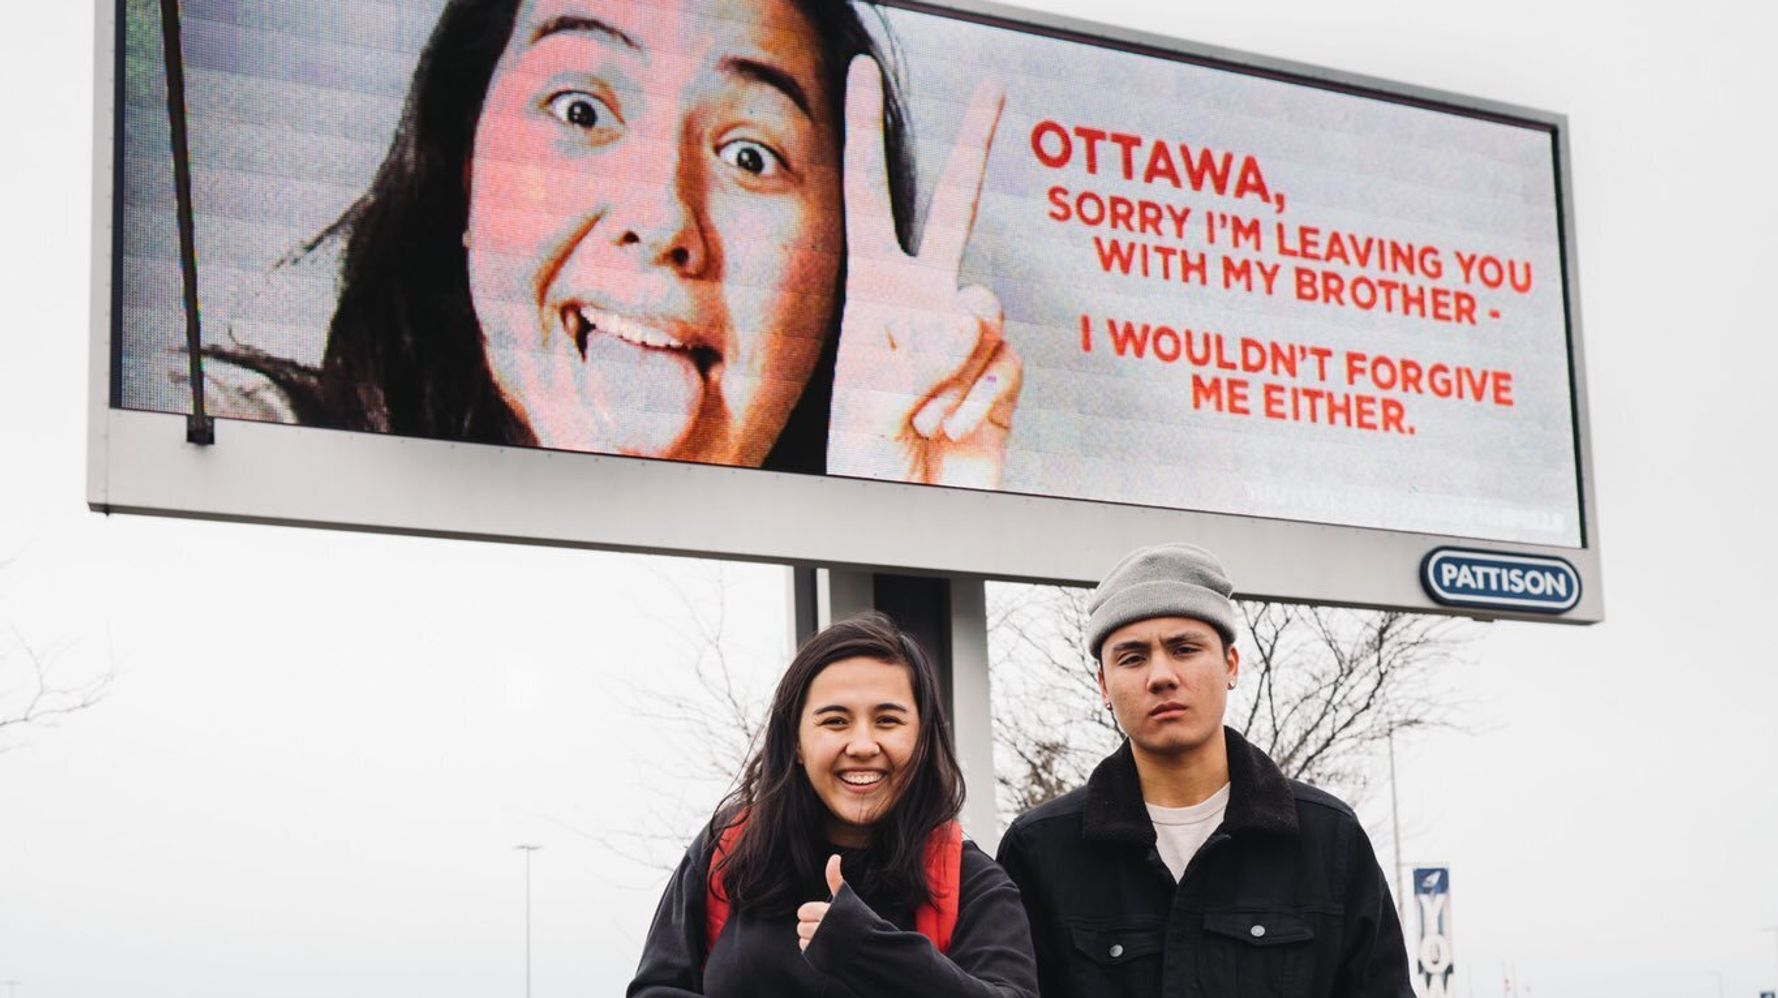 Elle Mills, Canadian YouTuber, Marked Her Departure From Ottawa With A Giant Billboard